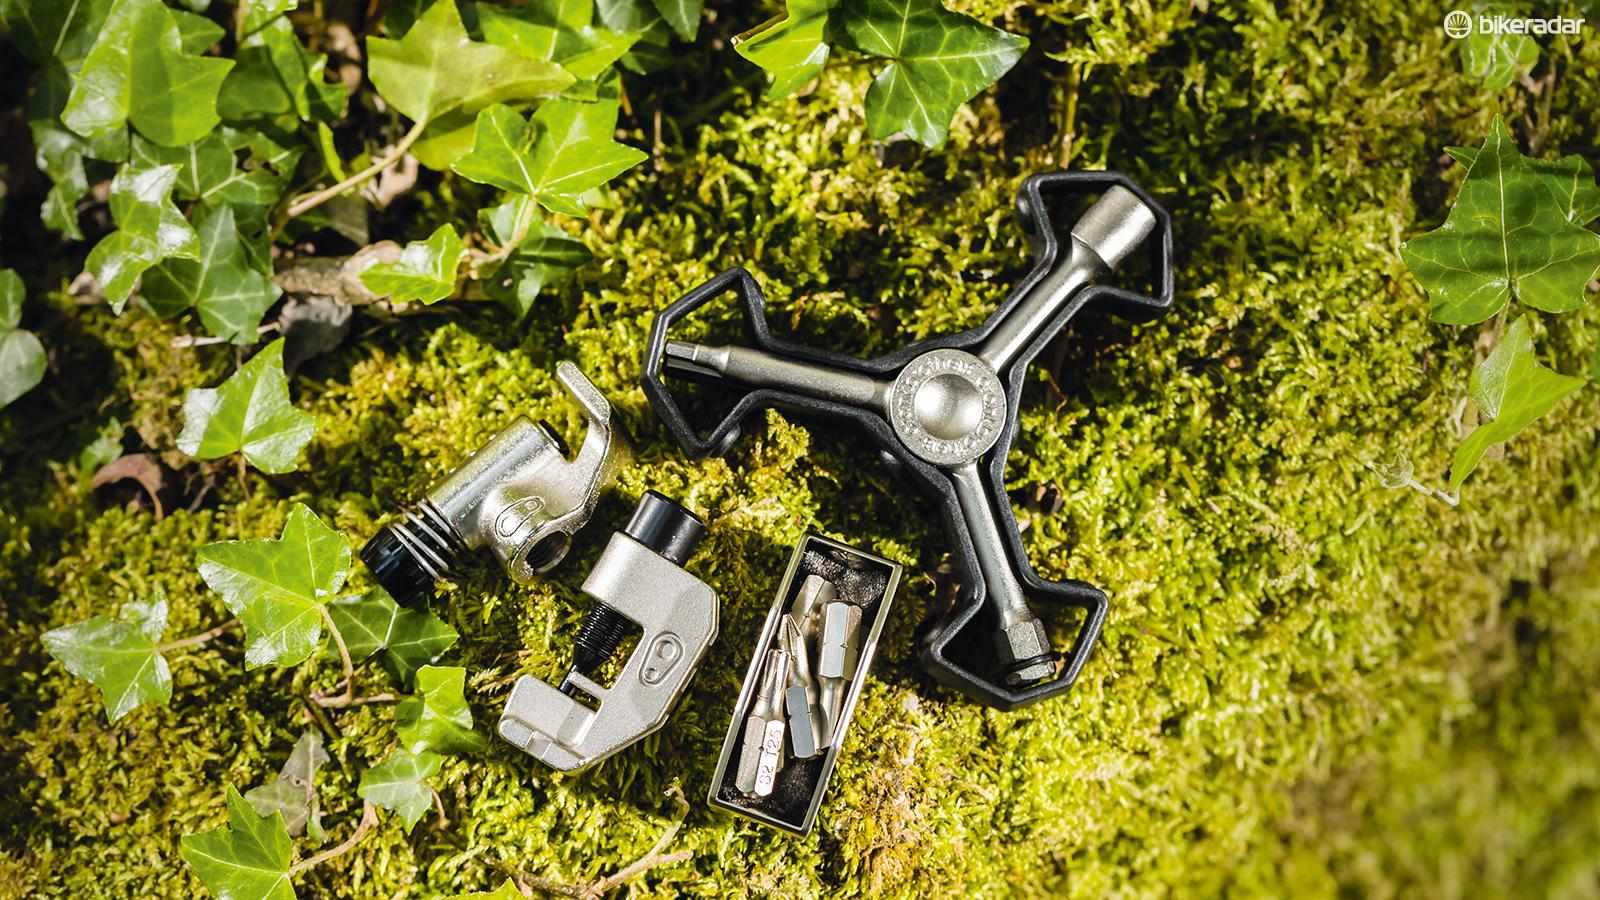 CrankBrothers y16 multi-tool